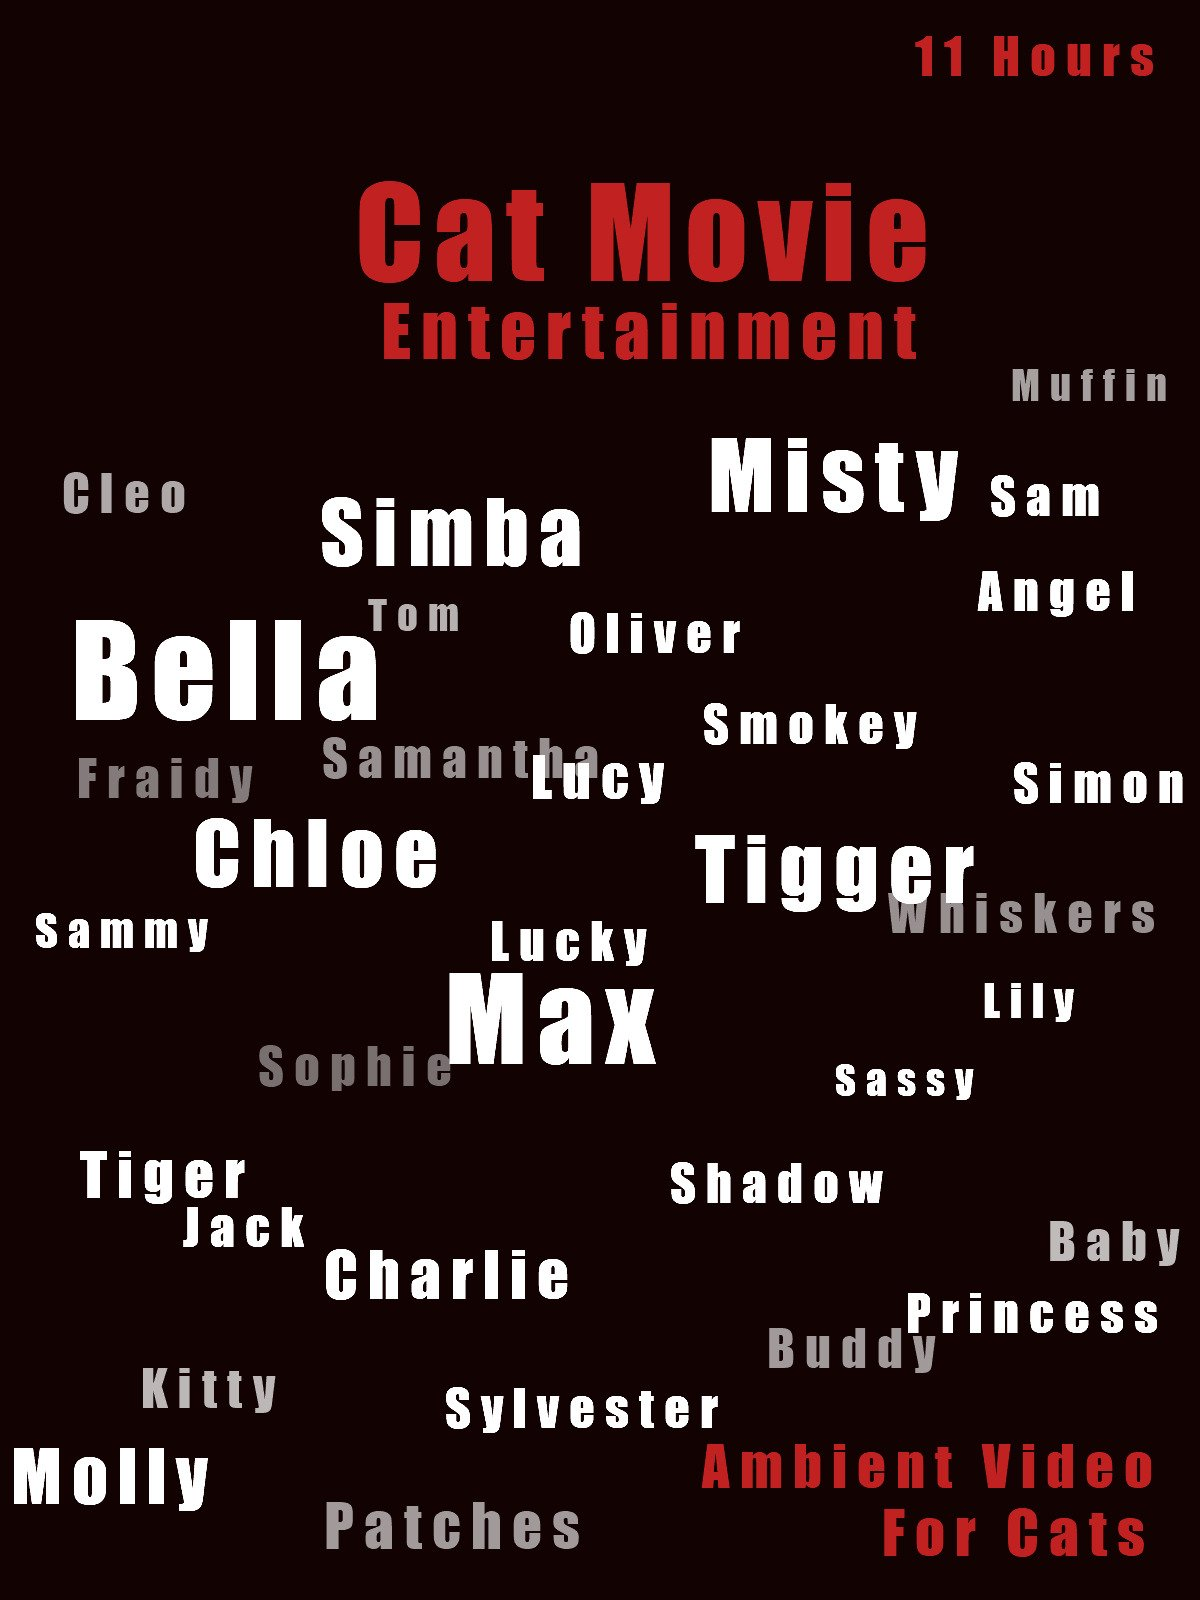 Cat Movie Entertainment